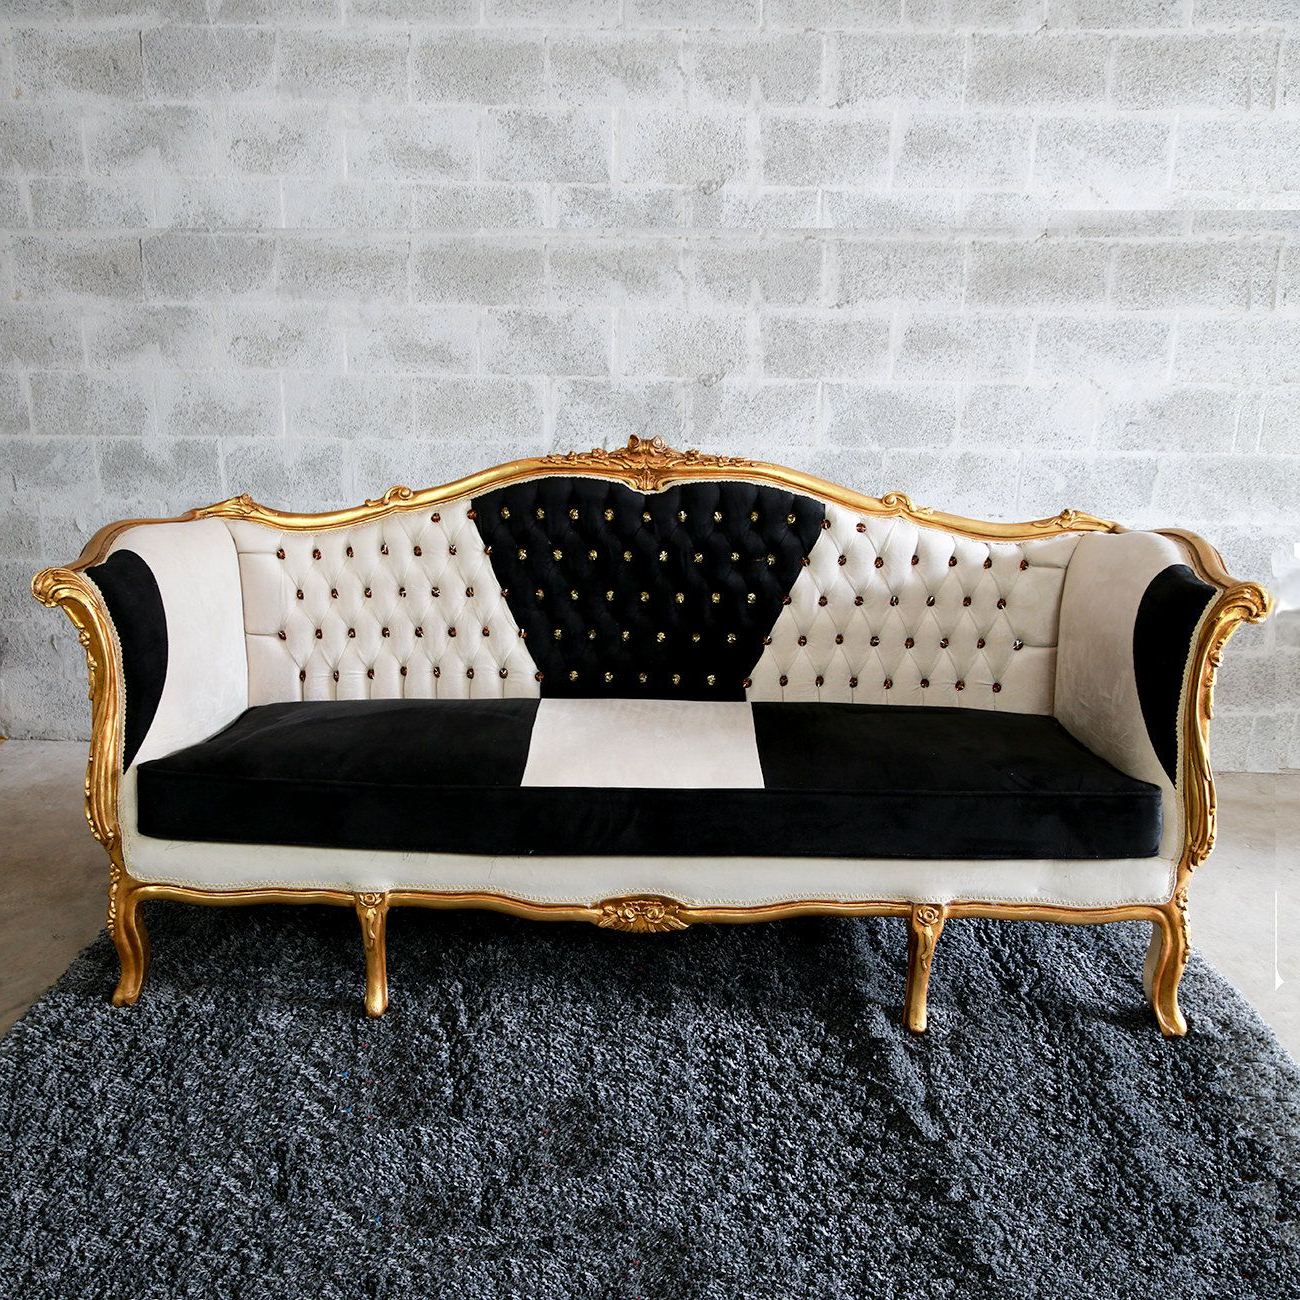 Baroque Tufted Settee Furniture Italian Antique Sofa Within Popular 4pc French Seamed Sectional Sofas Velvet Black (View 9 of 20)